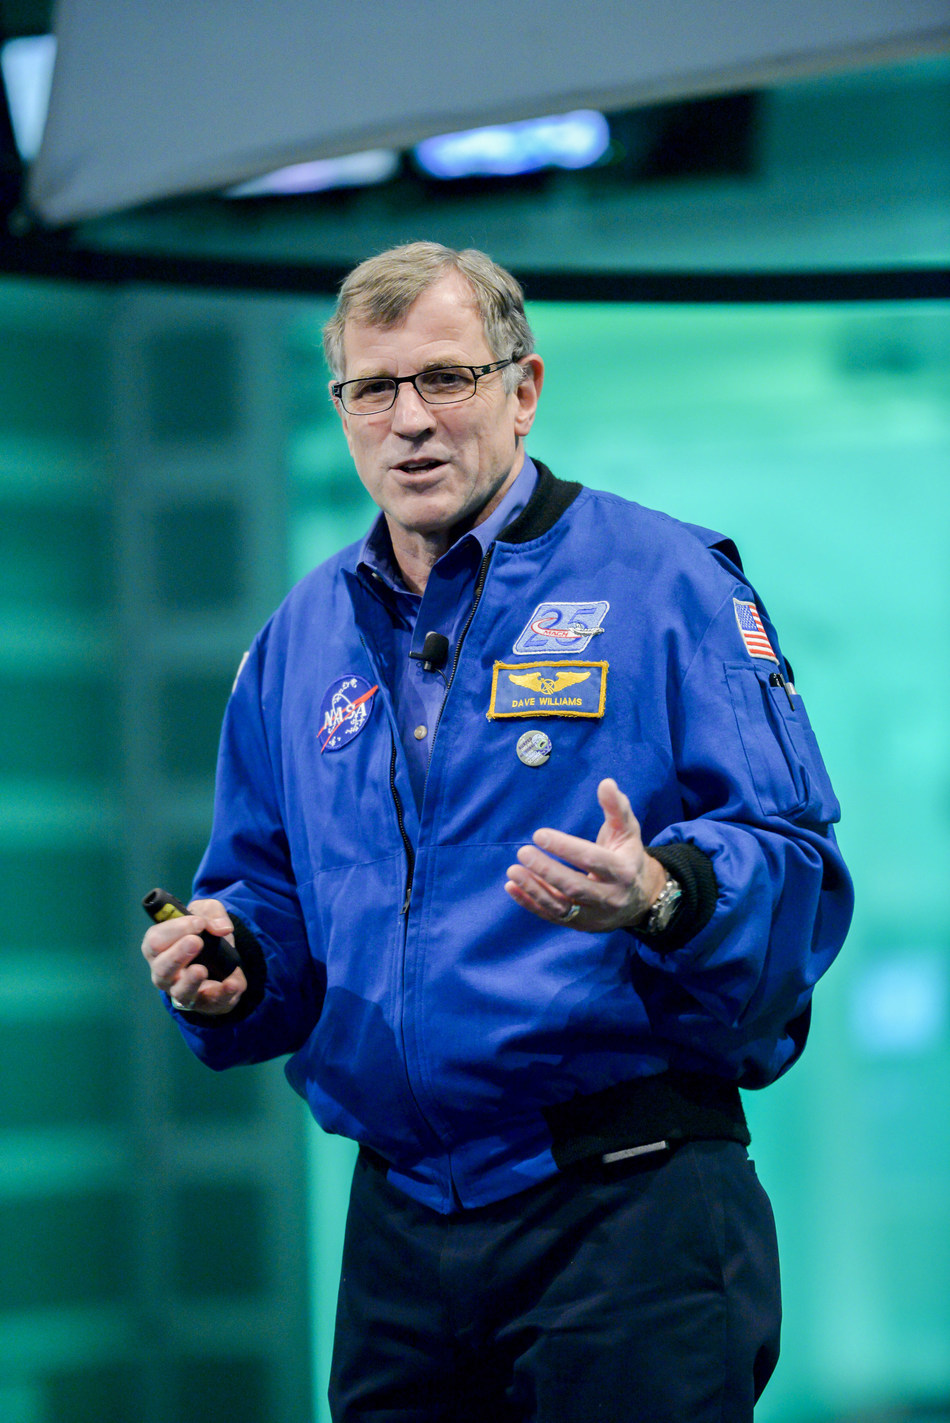 Former astronaut Dr. Dave Williams is at the Ontario Science Centre on Monday, December 3 for the launch of Expedition 58. (CNW Group/Ontario Science Centre)